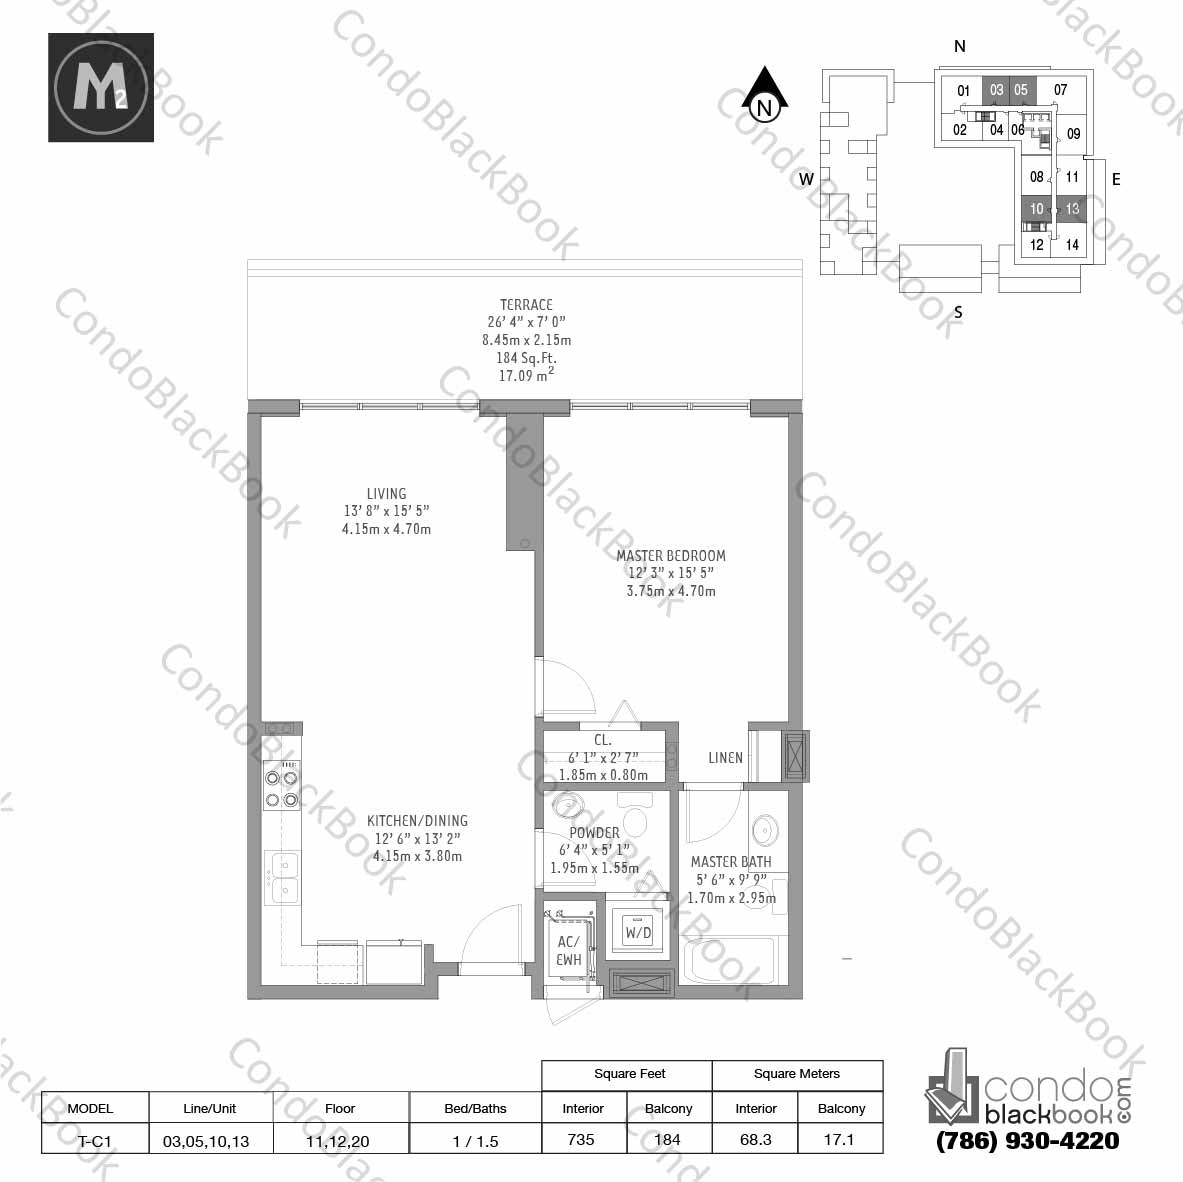 Floor plan for Midtown 2 Midtown Miami, model T-C1, line 03,05,10,13, 1 / 1.5 bedrooms, 735 sq ft